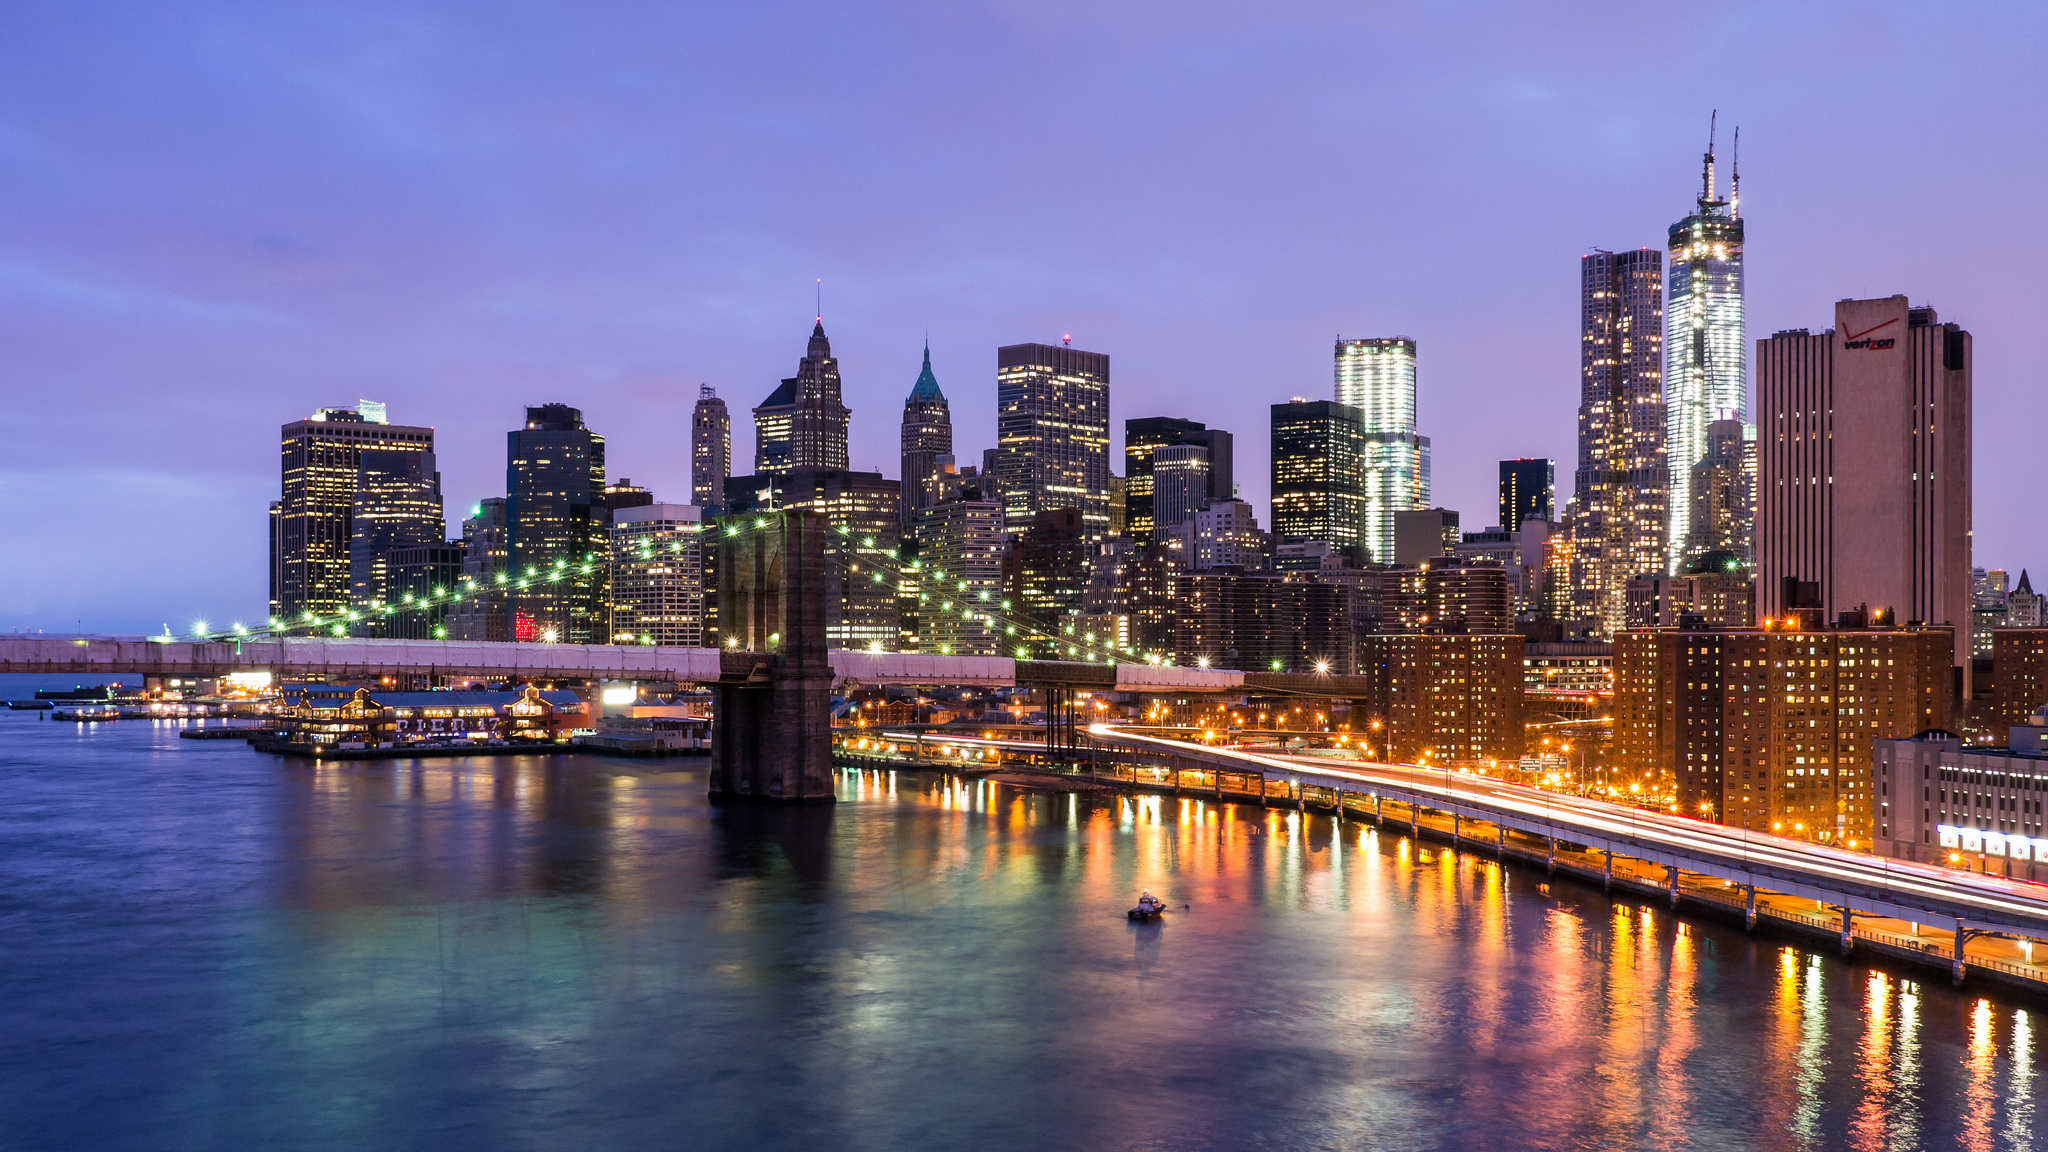 New York City Desktop Wallpaper HD 2048x1152